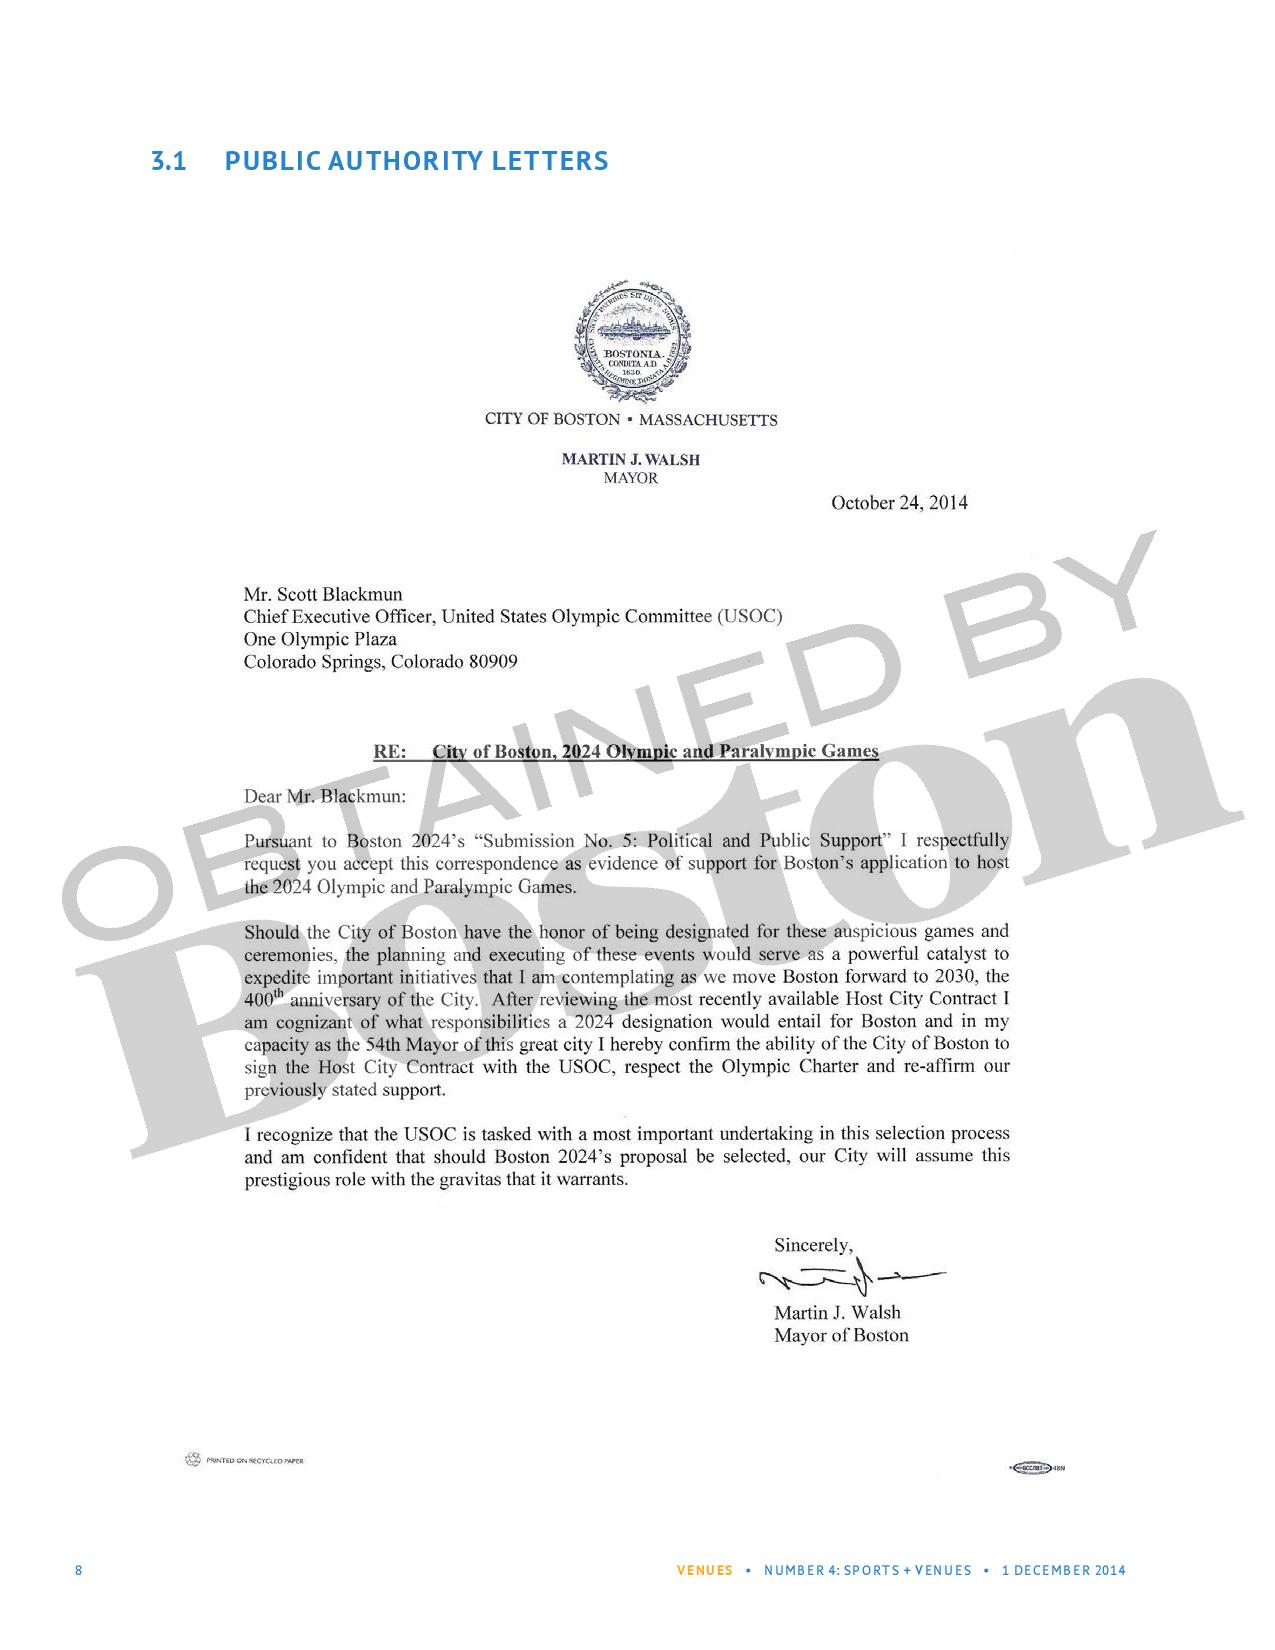 The October letter signed by Mayor Walsh